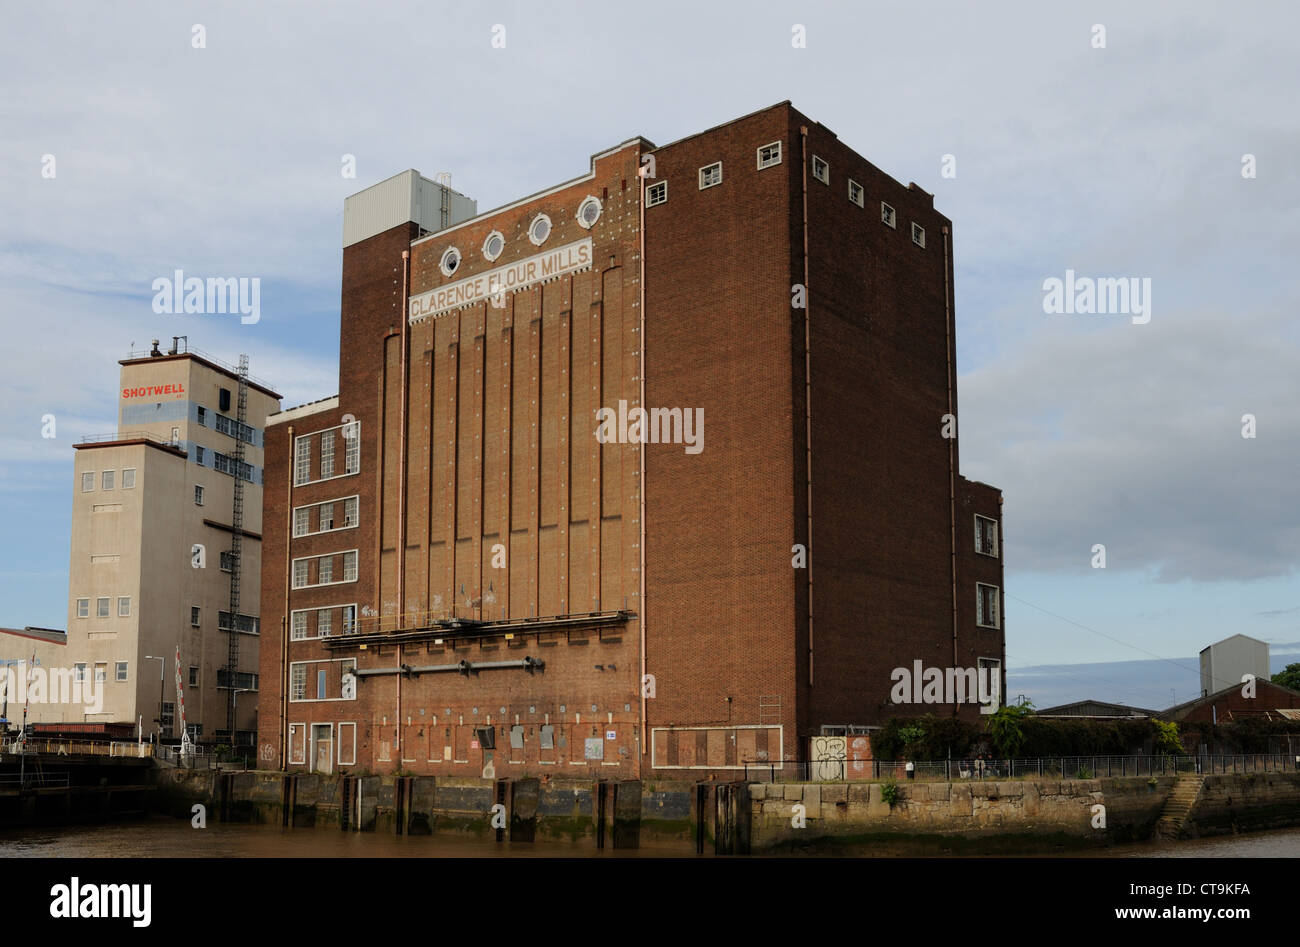 Clarence Flour Mills, Hull, East Yorkshire, England Stock Photo